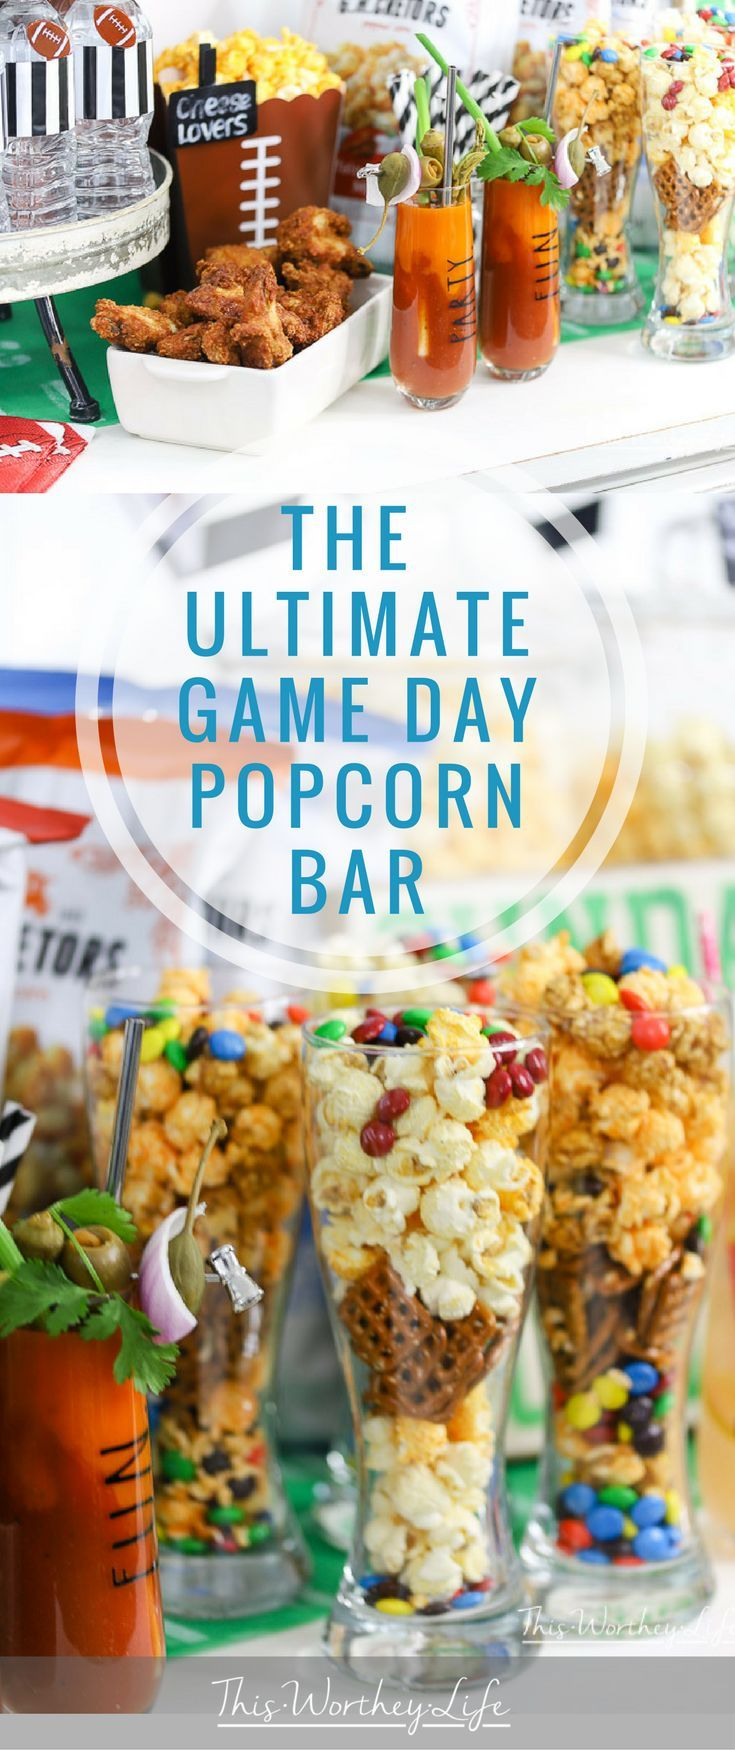 Create the ultimate popcorn bar for your next movie night in, game day watch party, awards party, birthday party, or upcoming celebration. A popcorn bar is a fun way to showcase a variety of popcorn flavors in unique and creative ways. [AD]